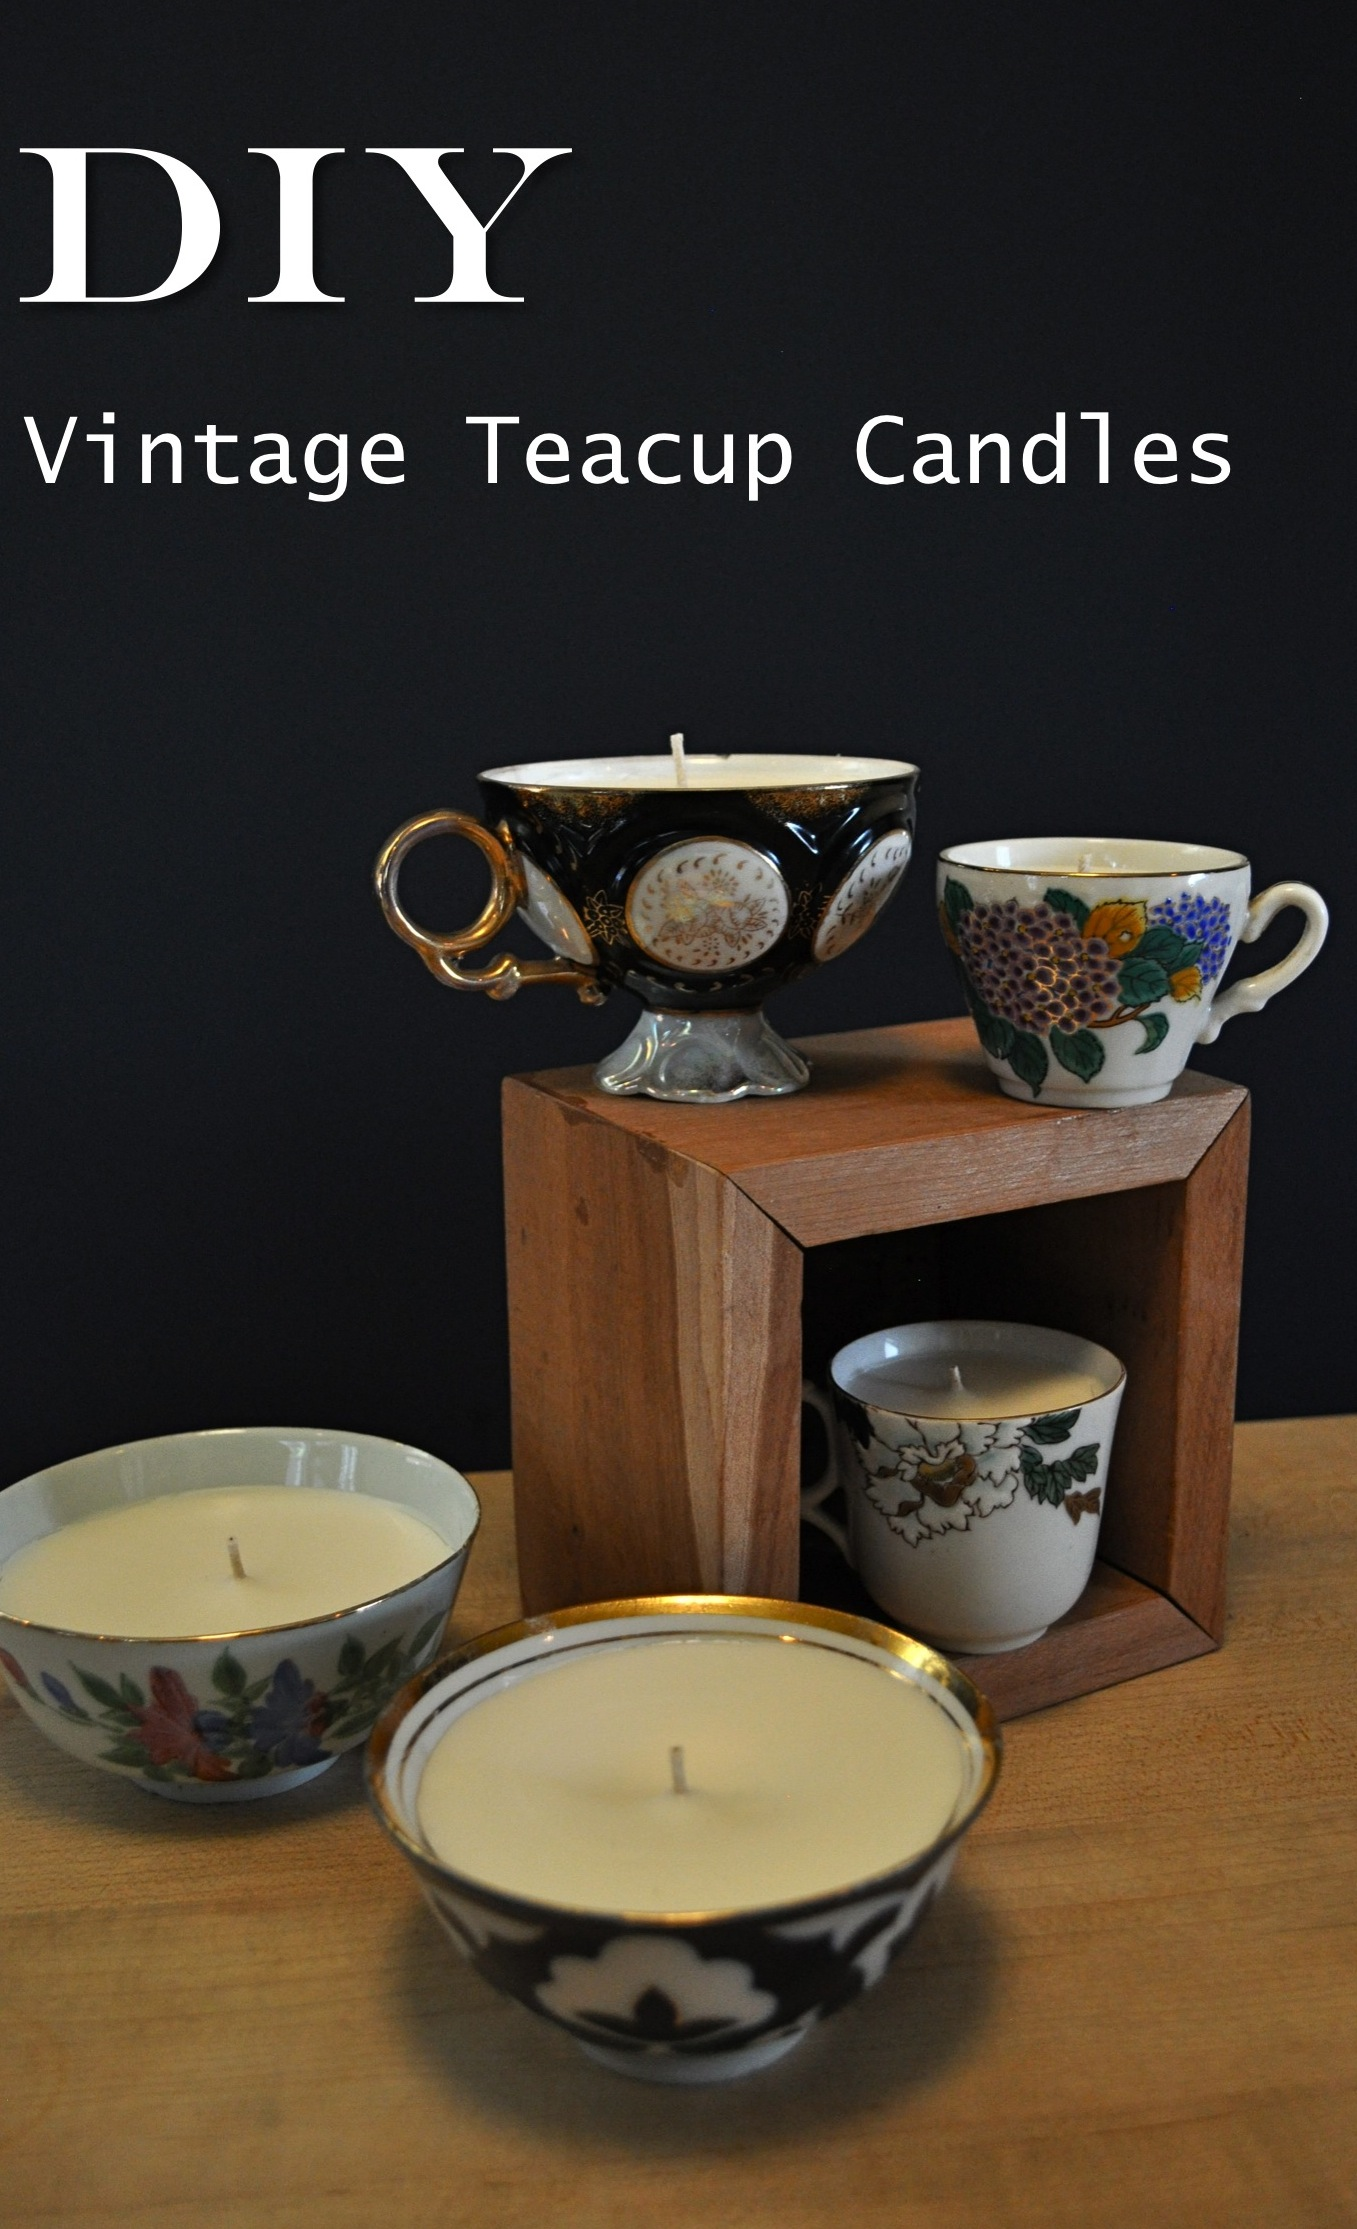 Red House West//DIY Vintage Teacup Candles